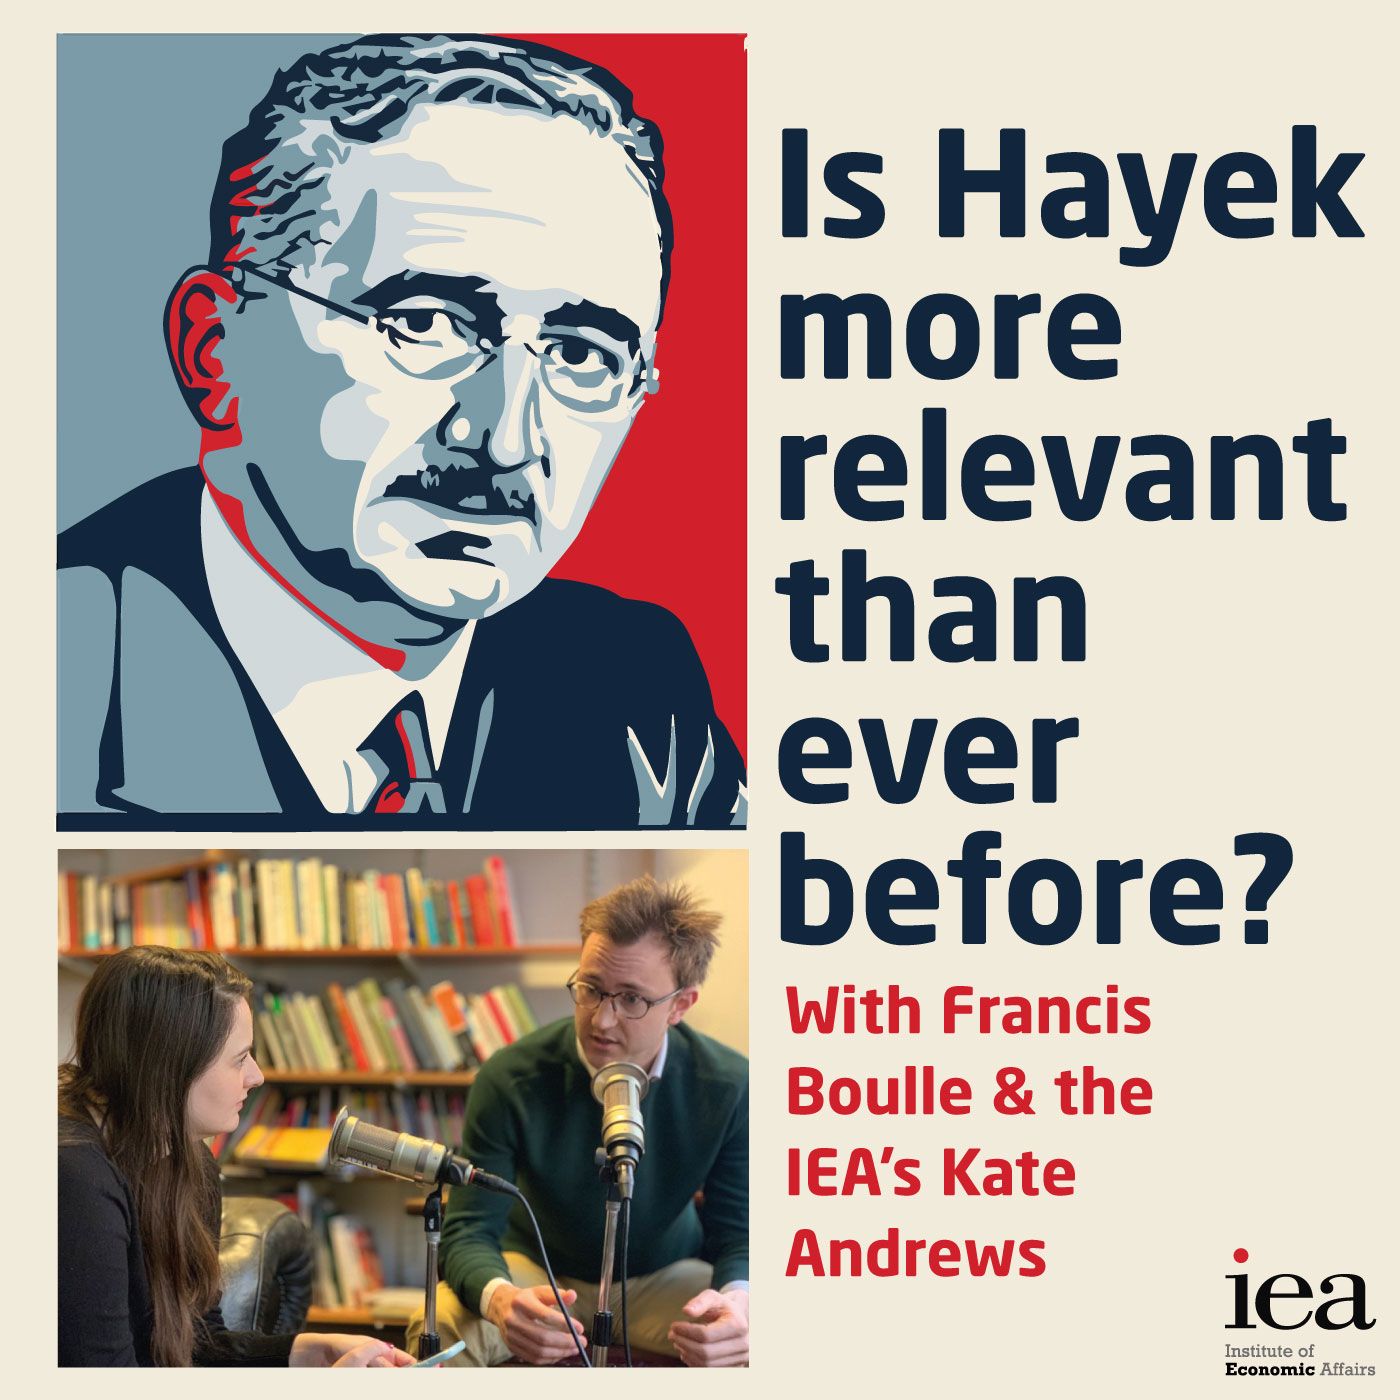 Is Hayek more relevant than ever before?